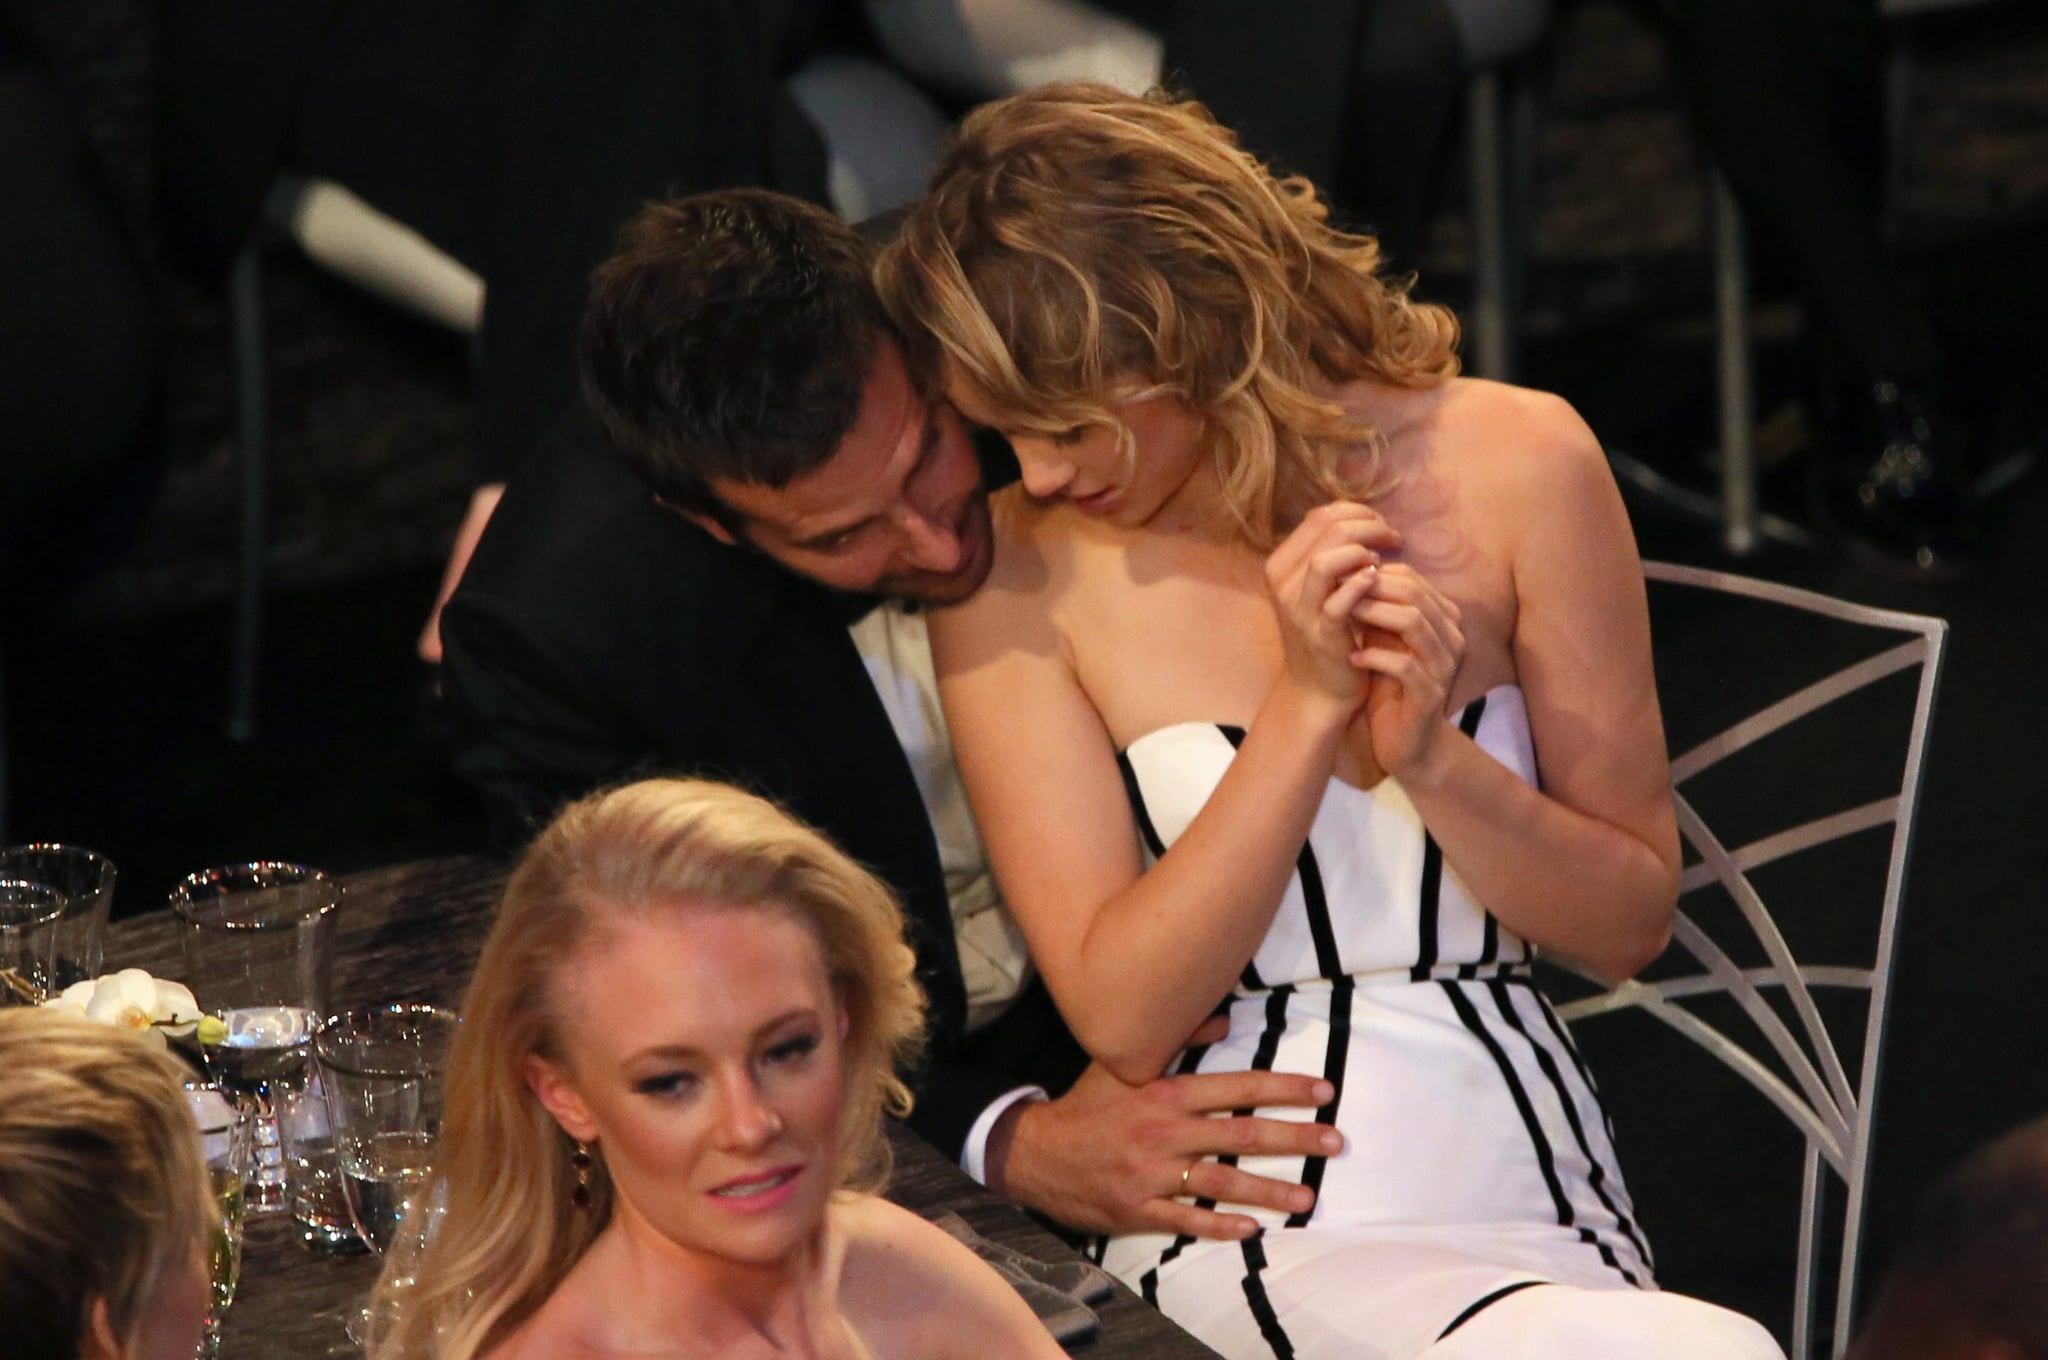 19. Bradley Cooper Can't Keep His Hands Off Girlfriend Suki Waterhouse